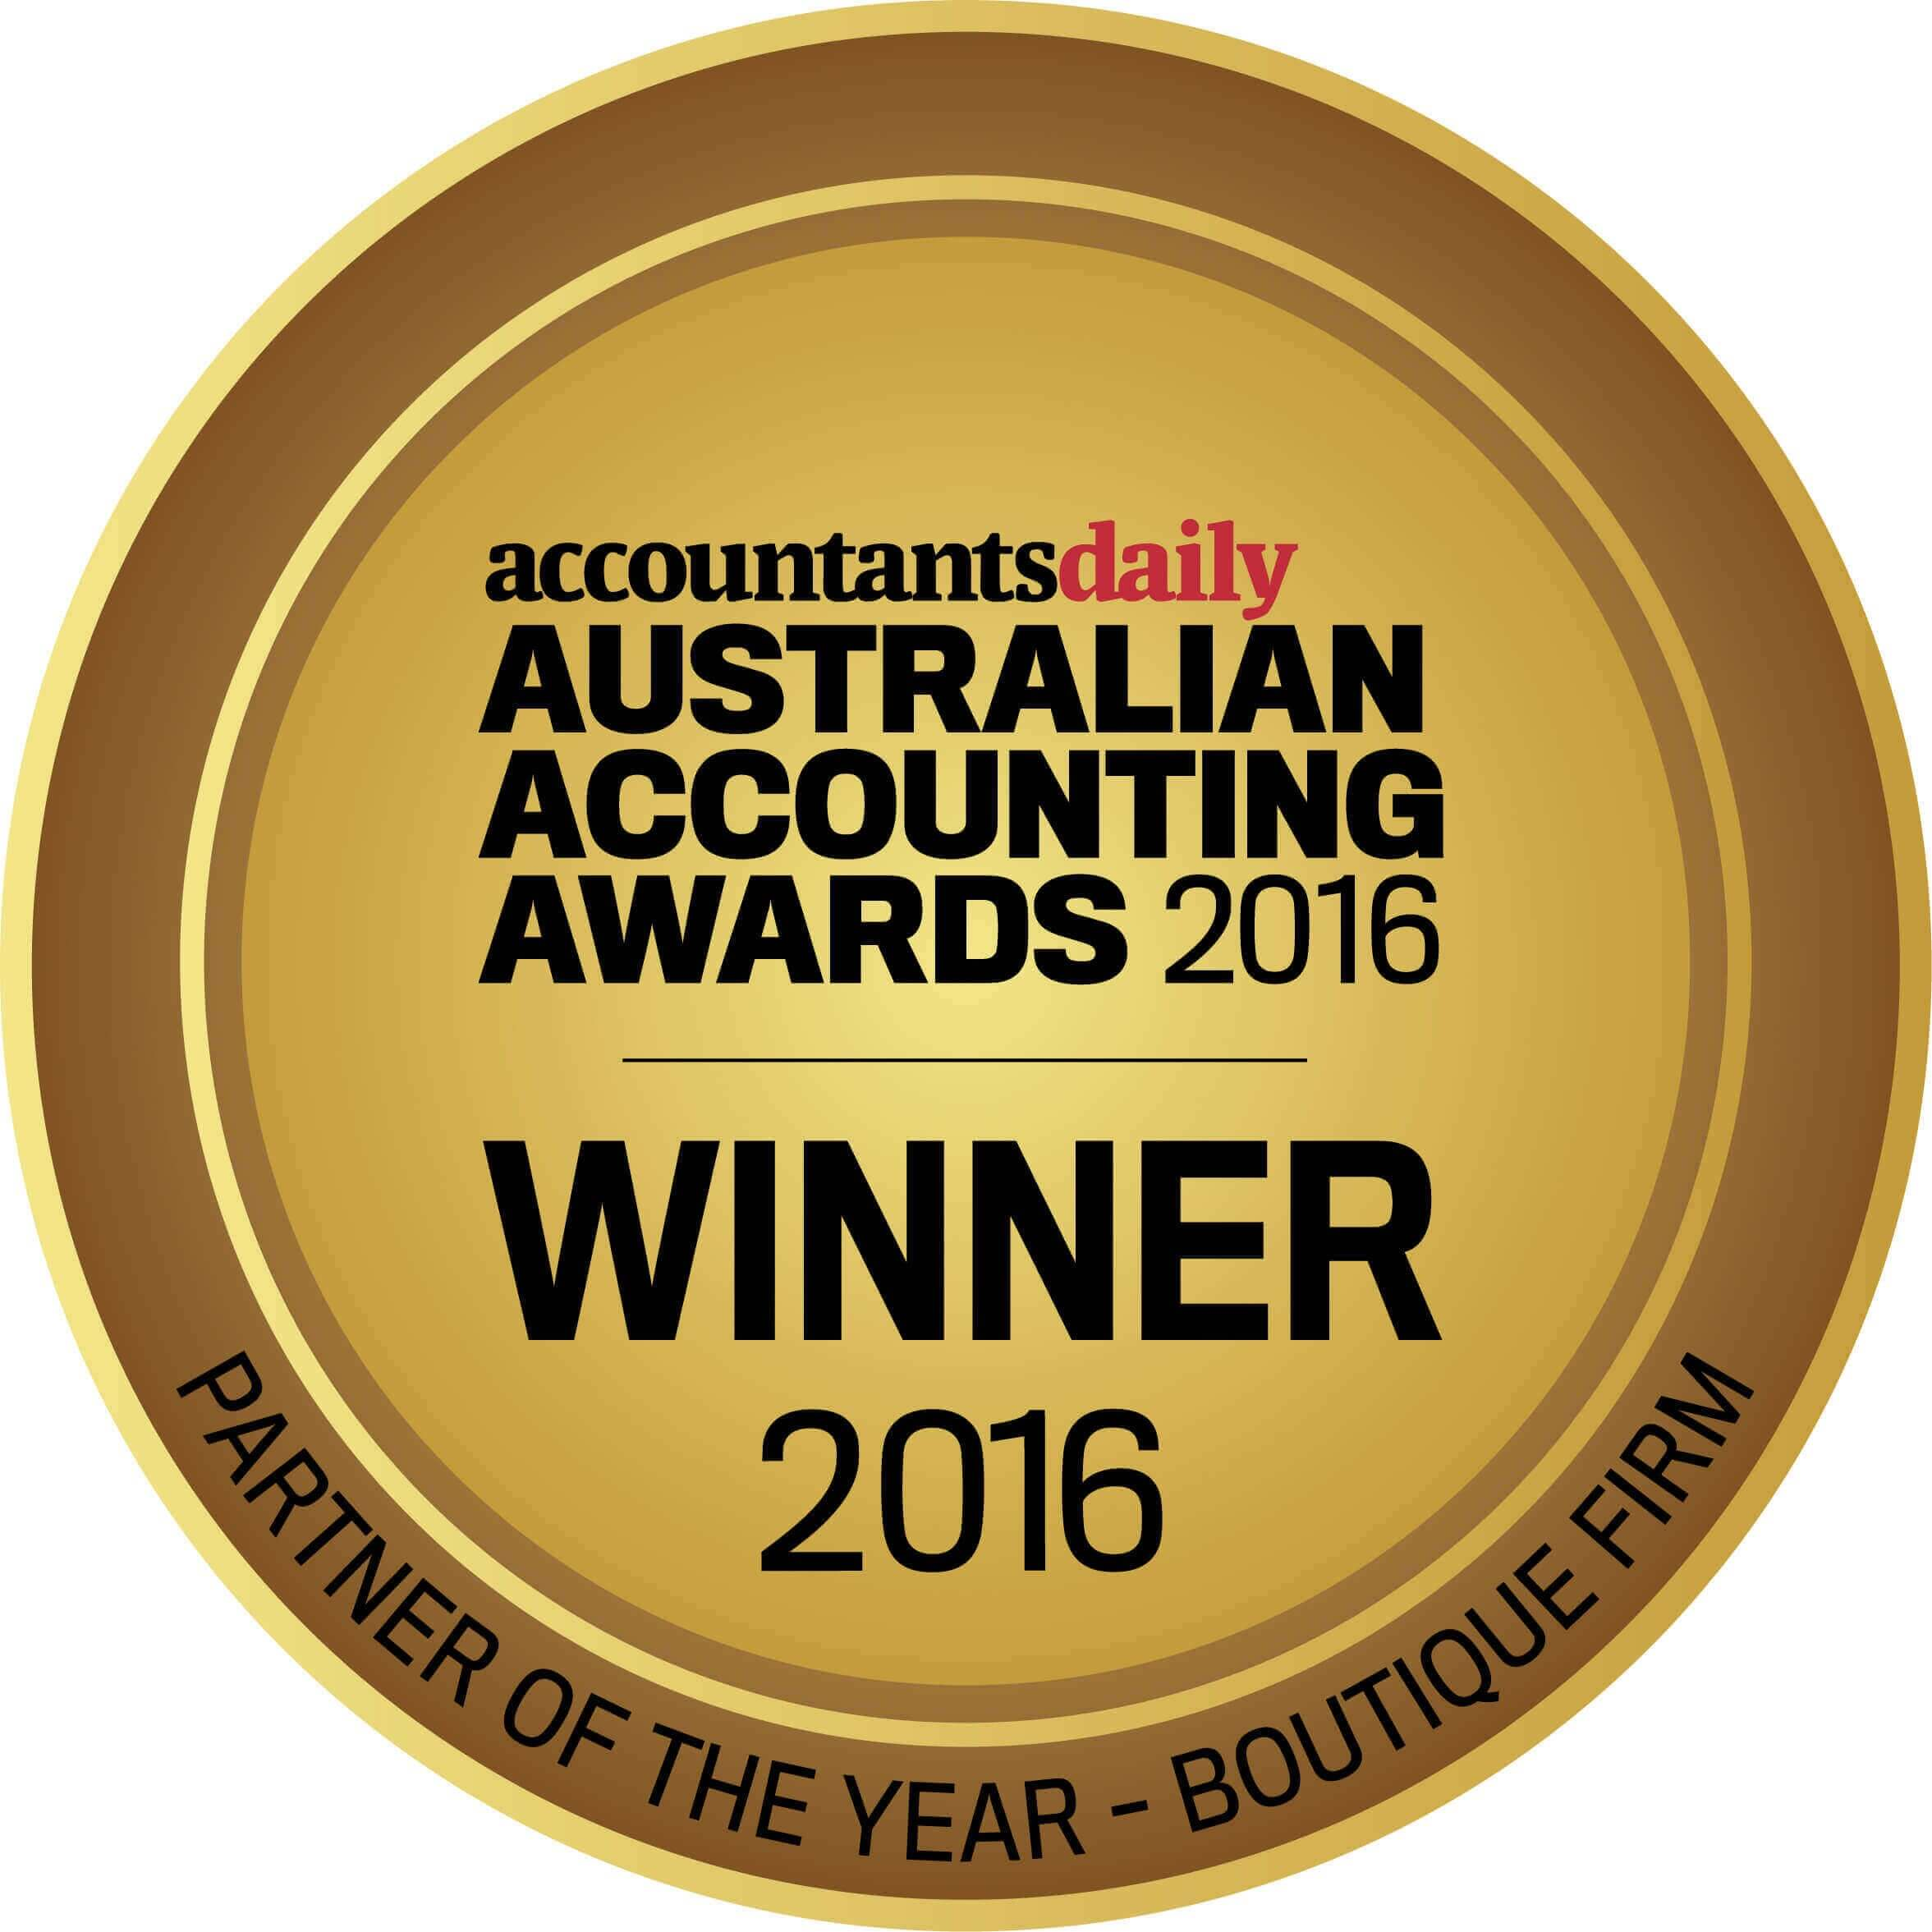 AAA_SEAL_2016_Winners_PARTNER-OF-THE-YEAR-BOUTIQUE-FIRM